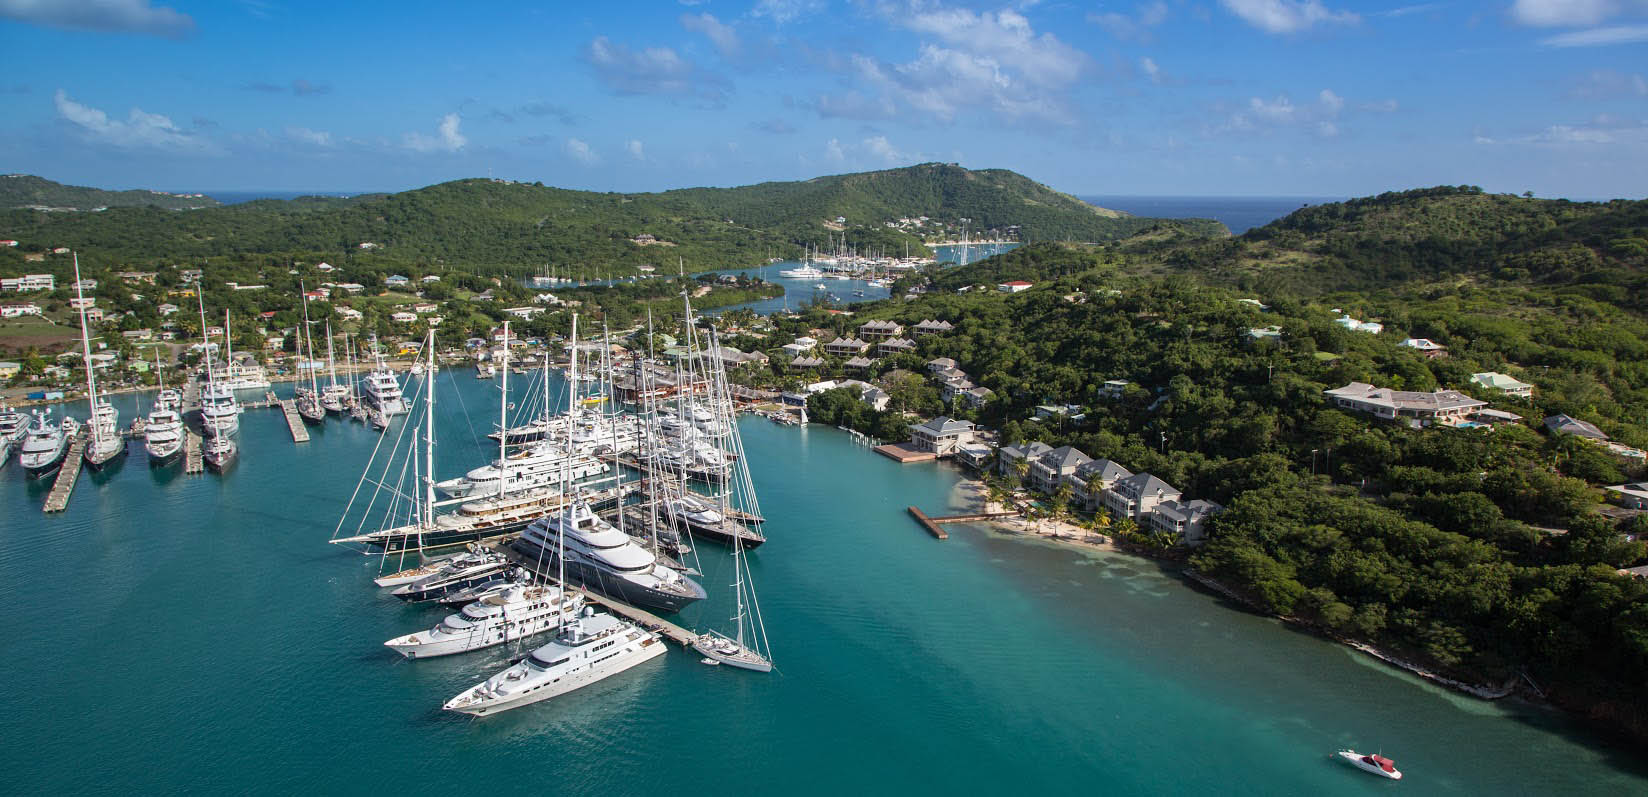 South Point, Falmouth, Antigua, Caribbean